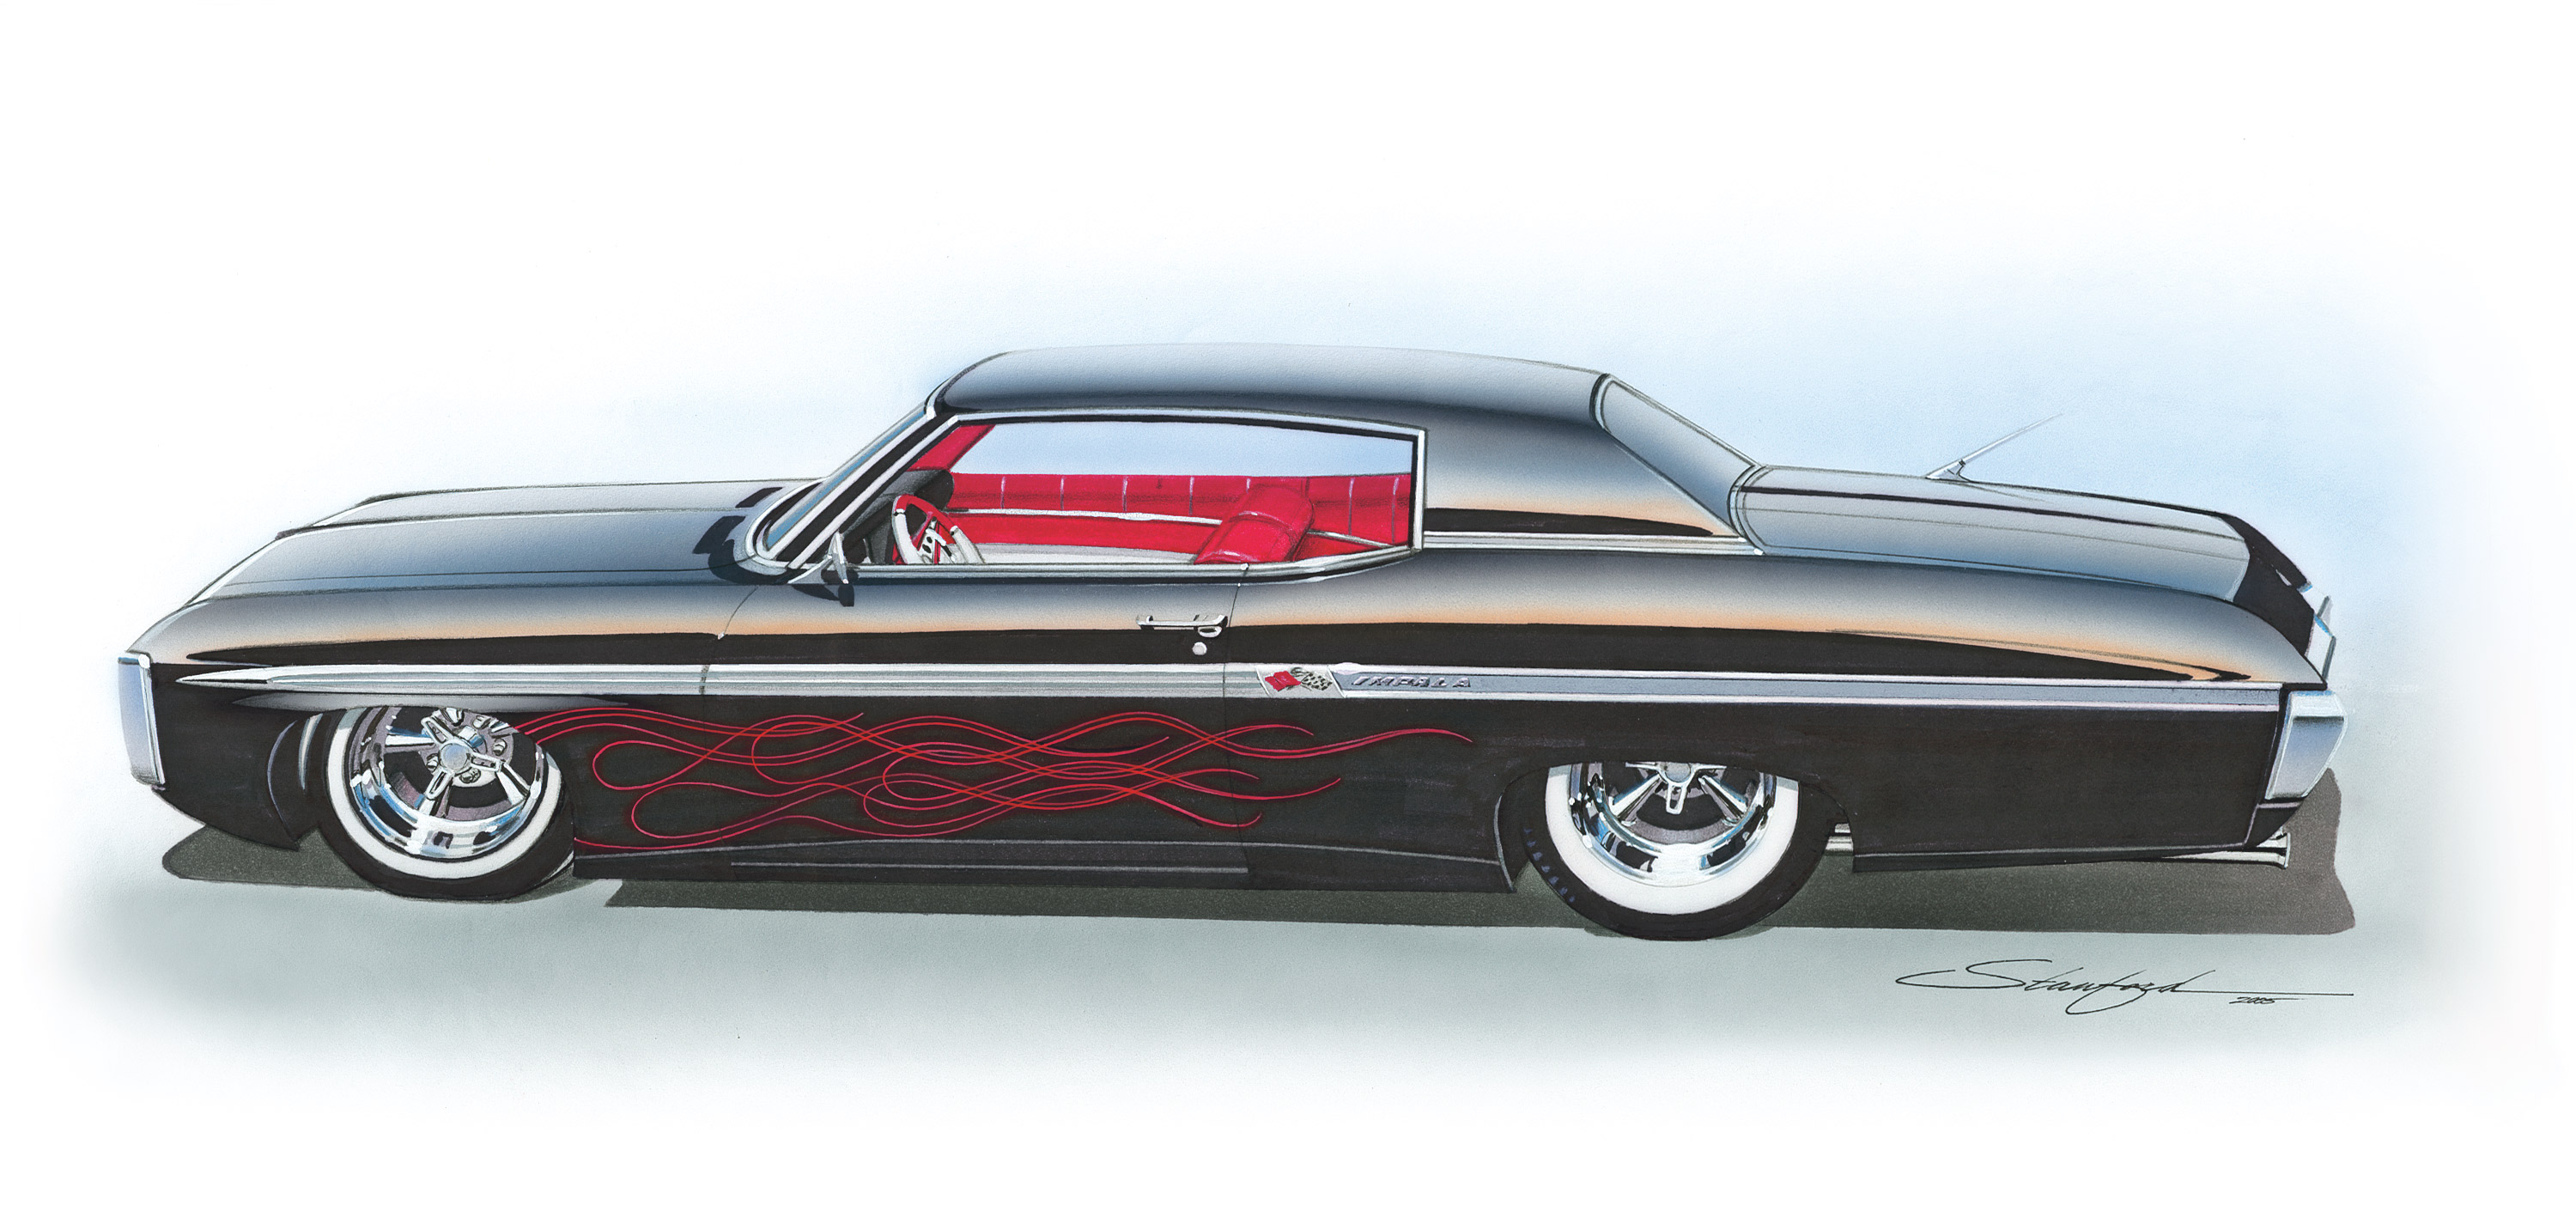 Chevy Hot Rod Impala Lowrider Classic Muscle Cars Wallpaper